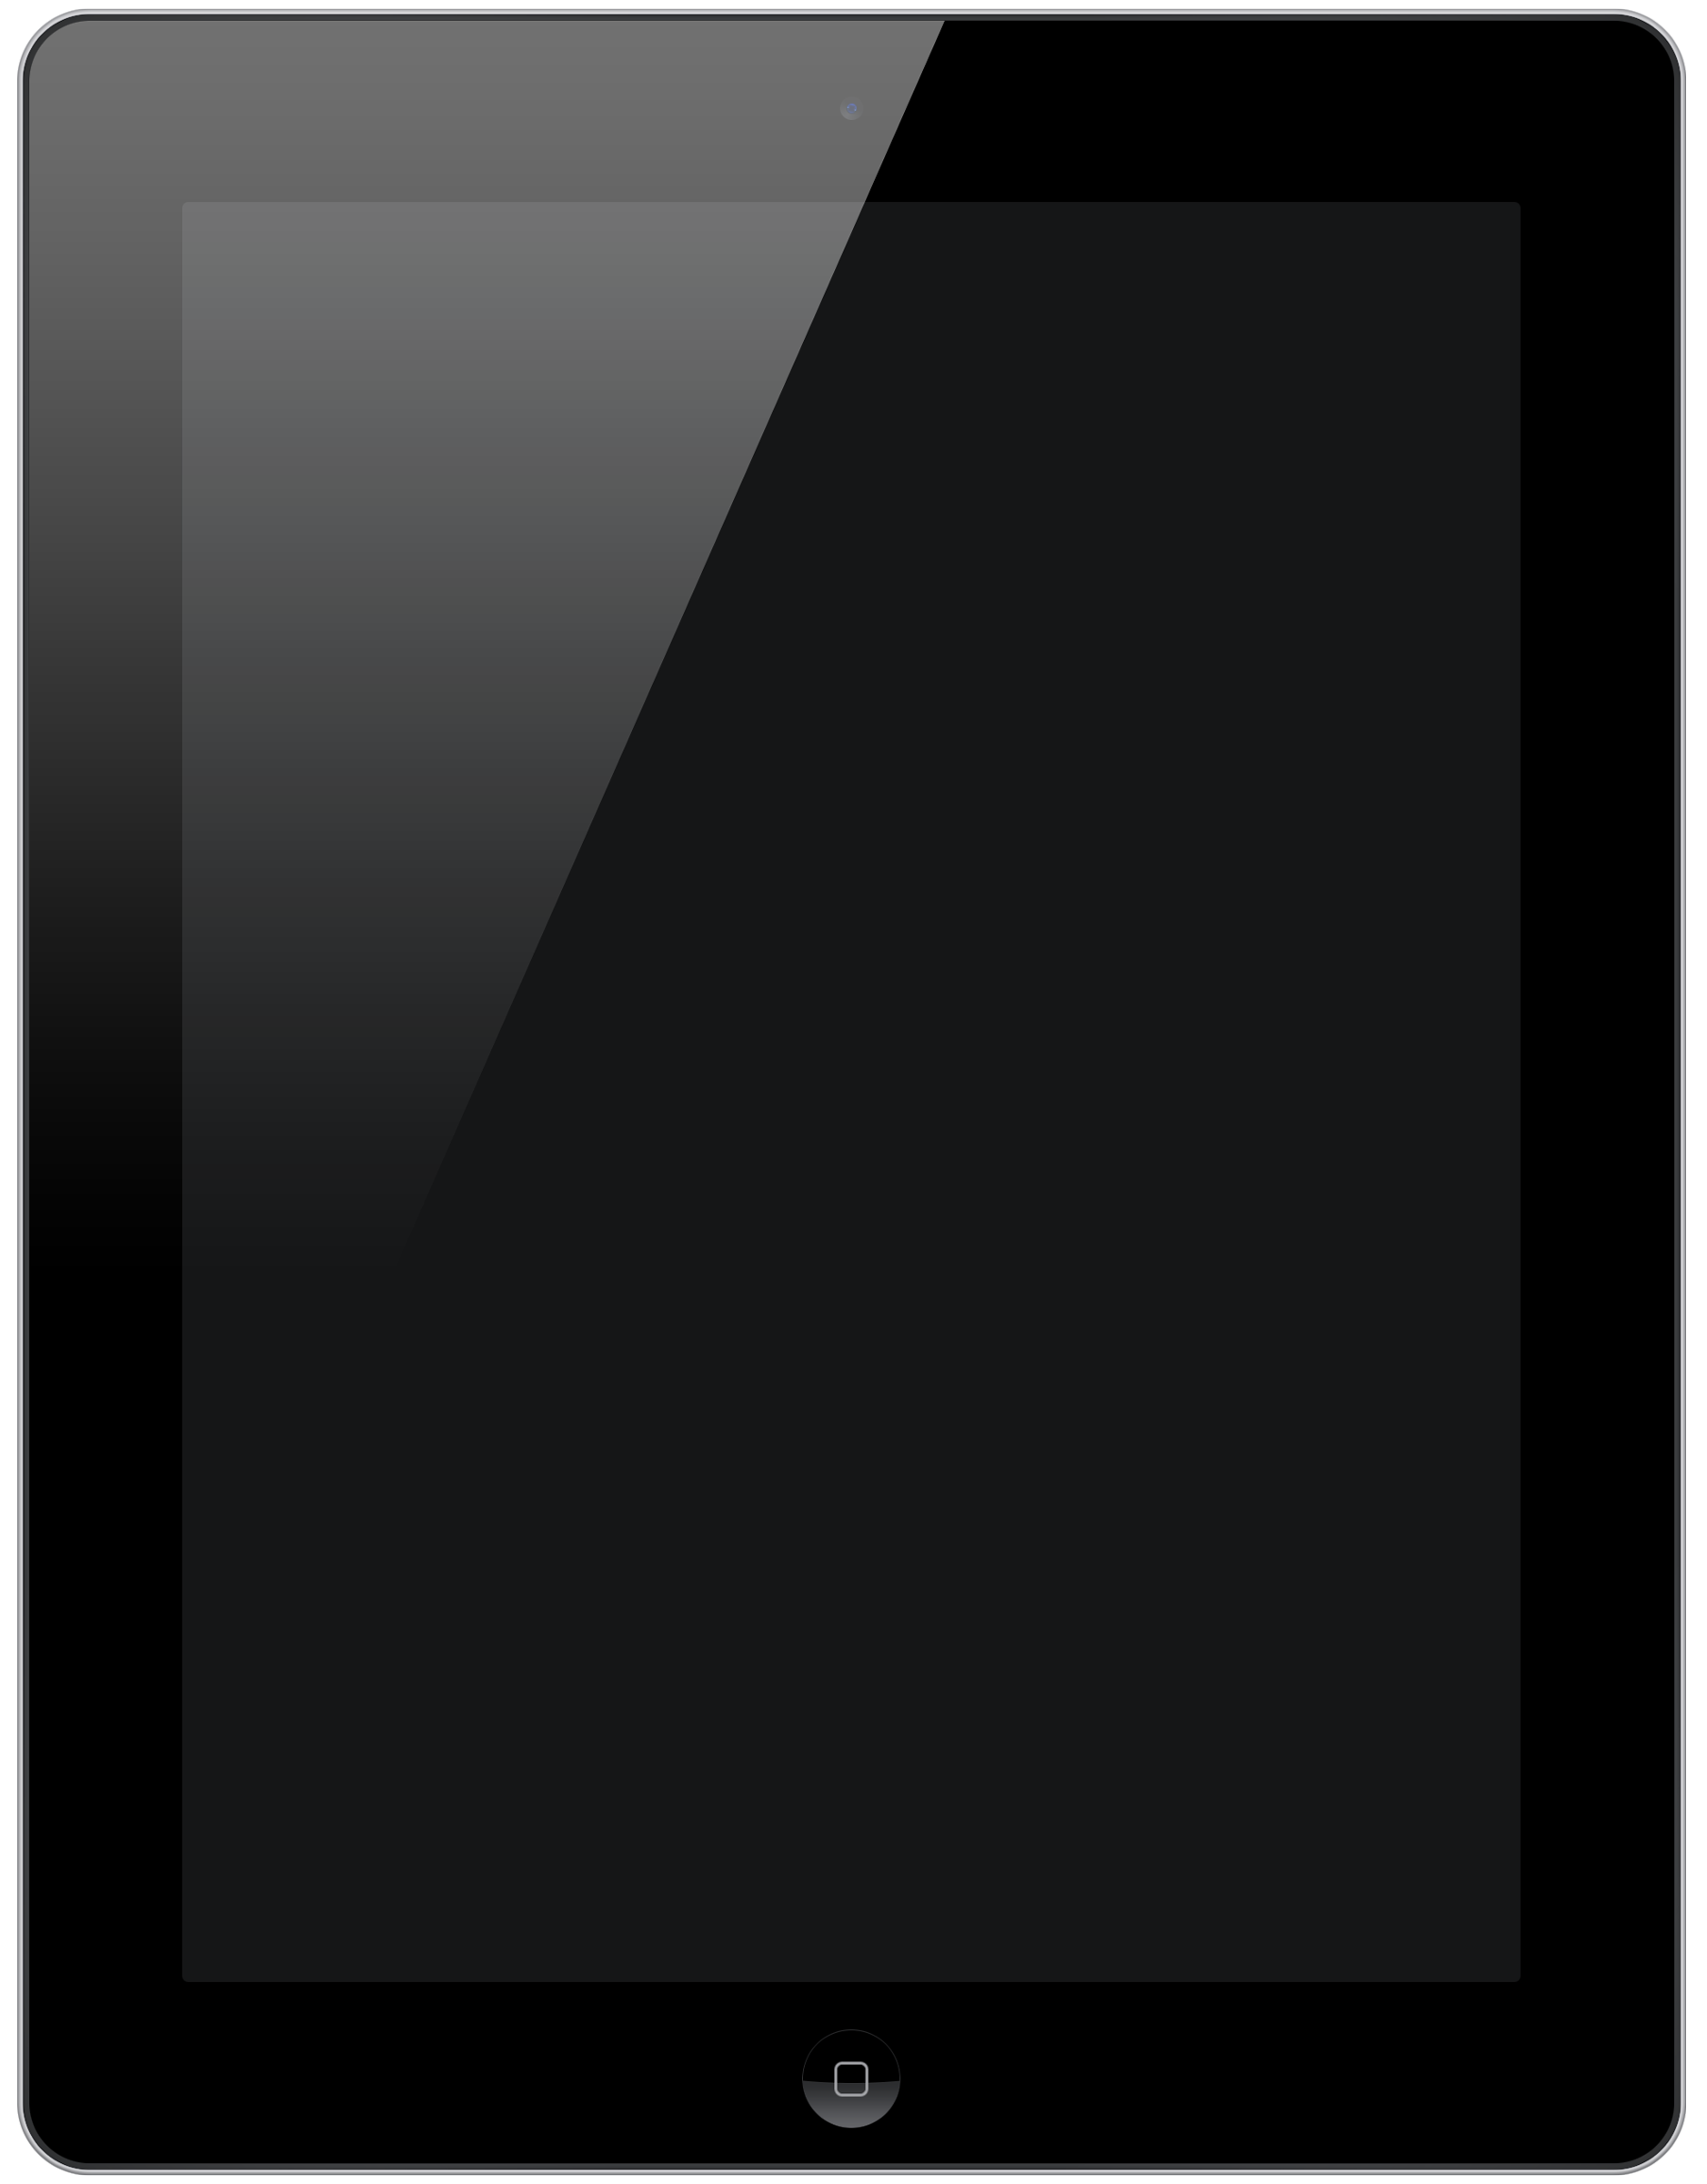 Tablet PNG - 14161